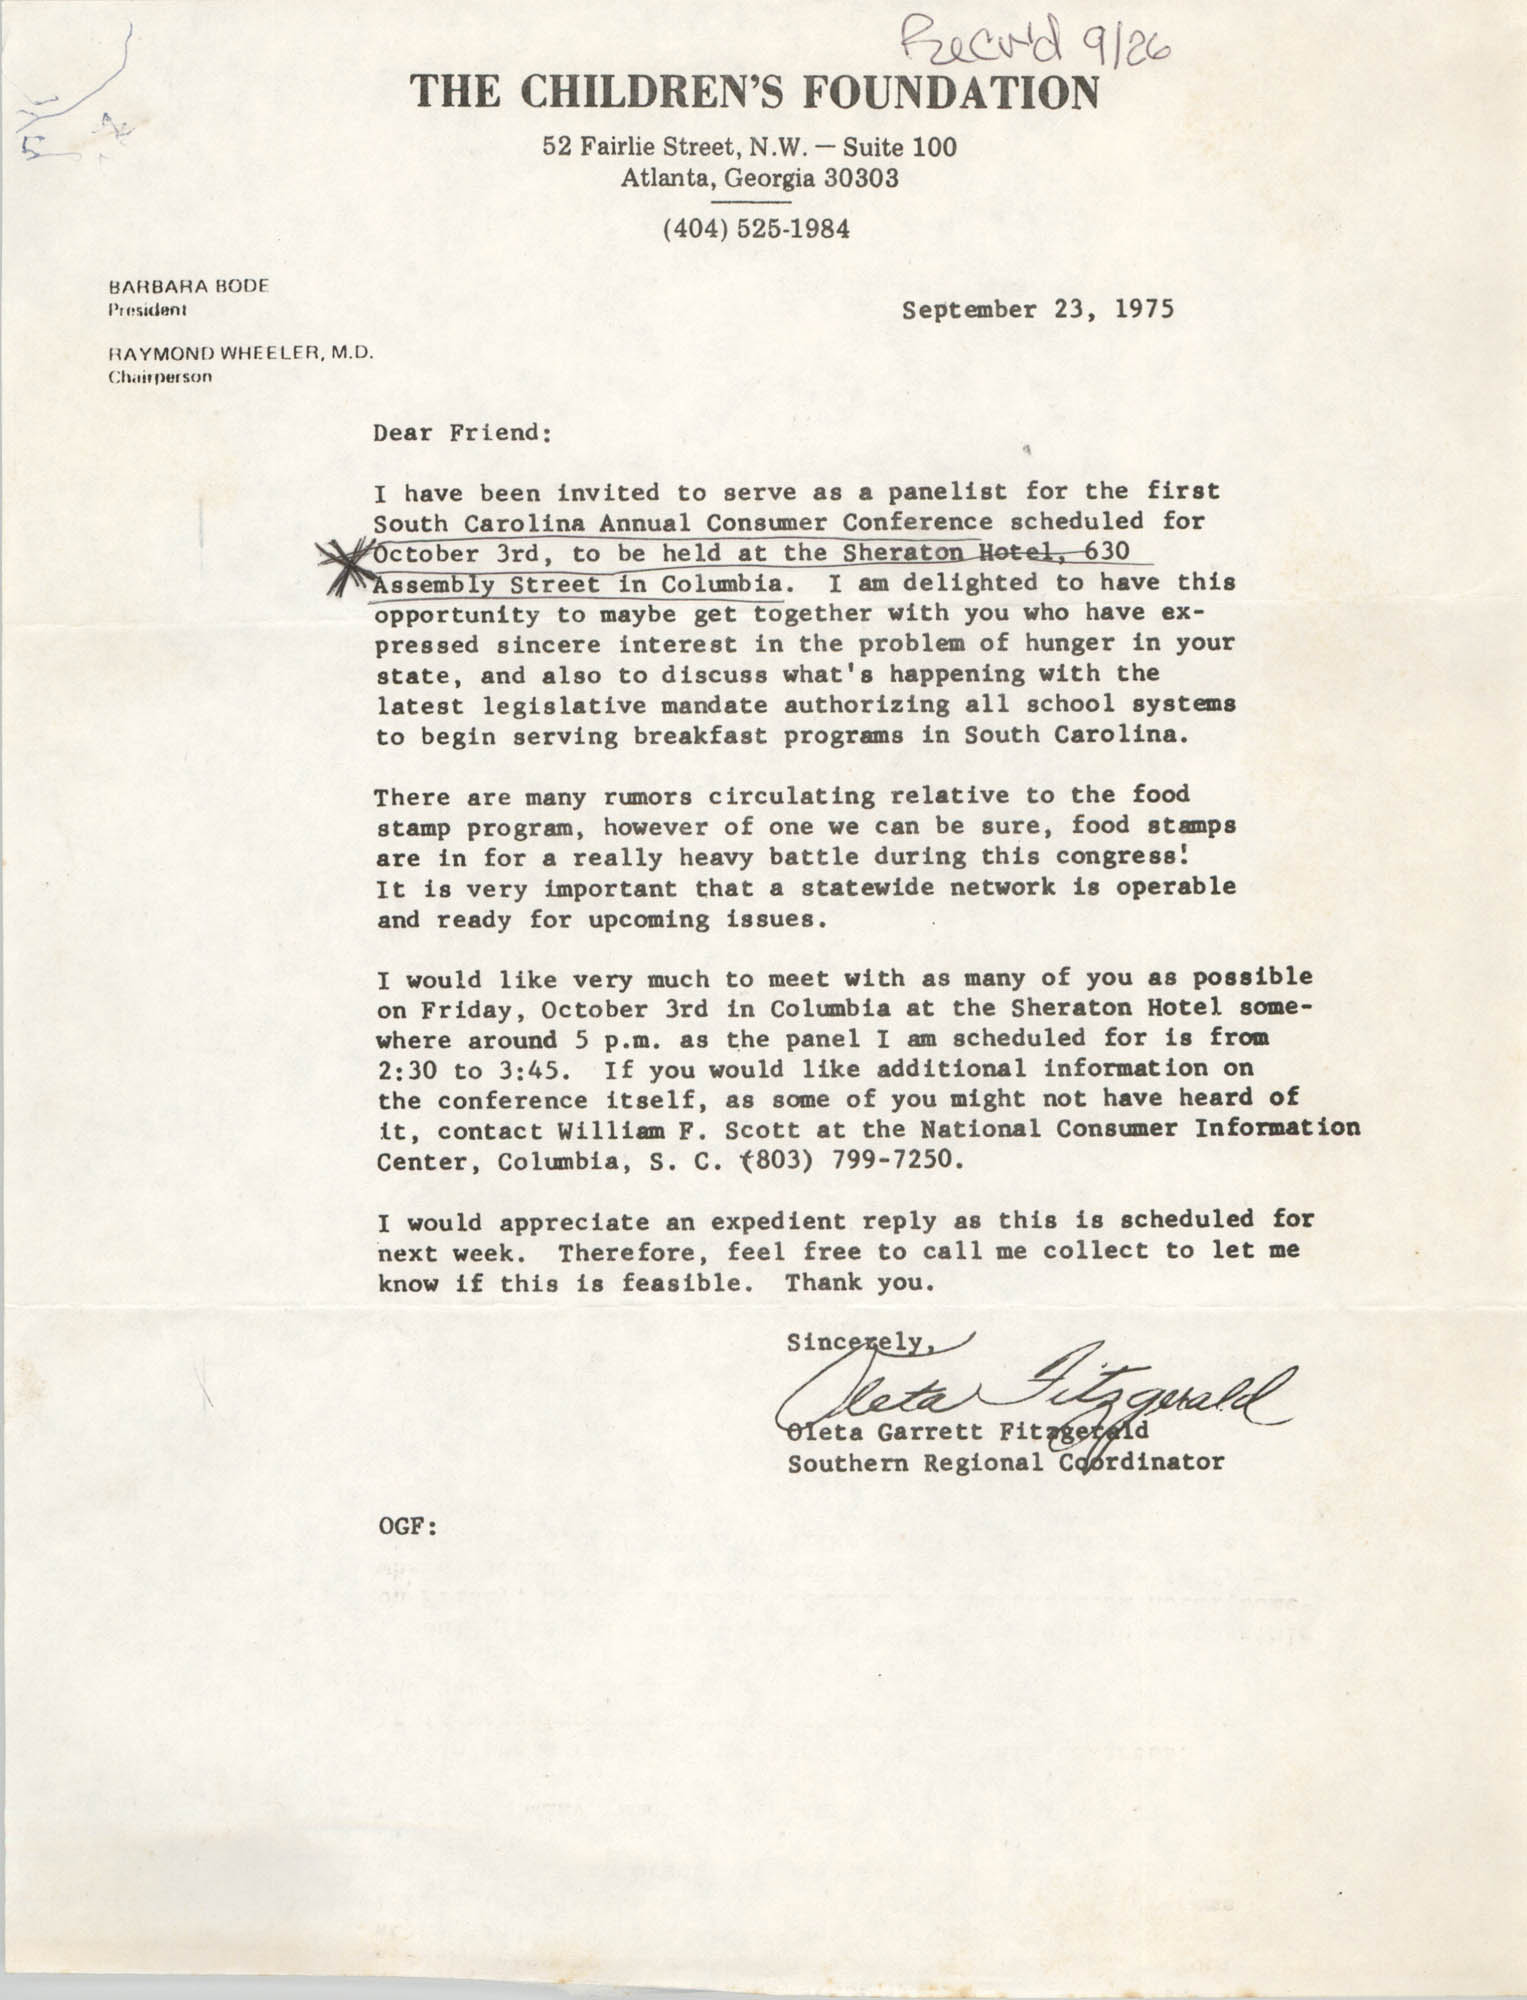 Letter from Oleta Garrett Fitzgerald, September 23, 1975